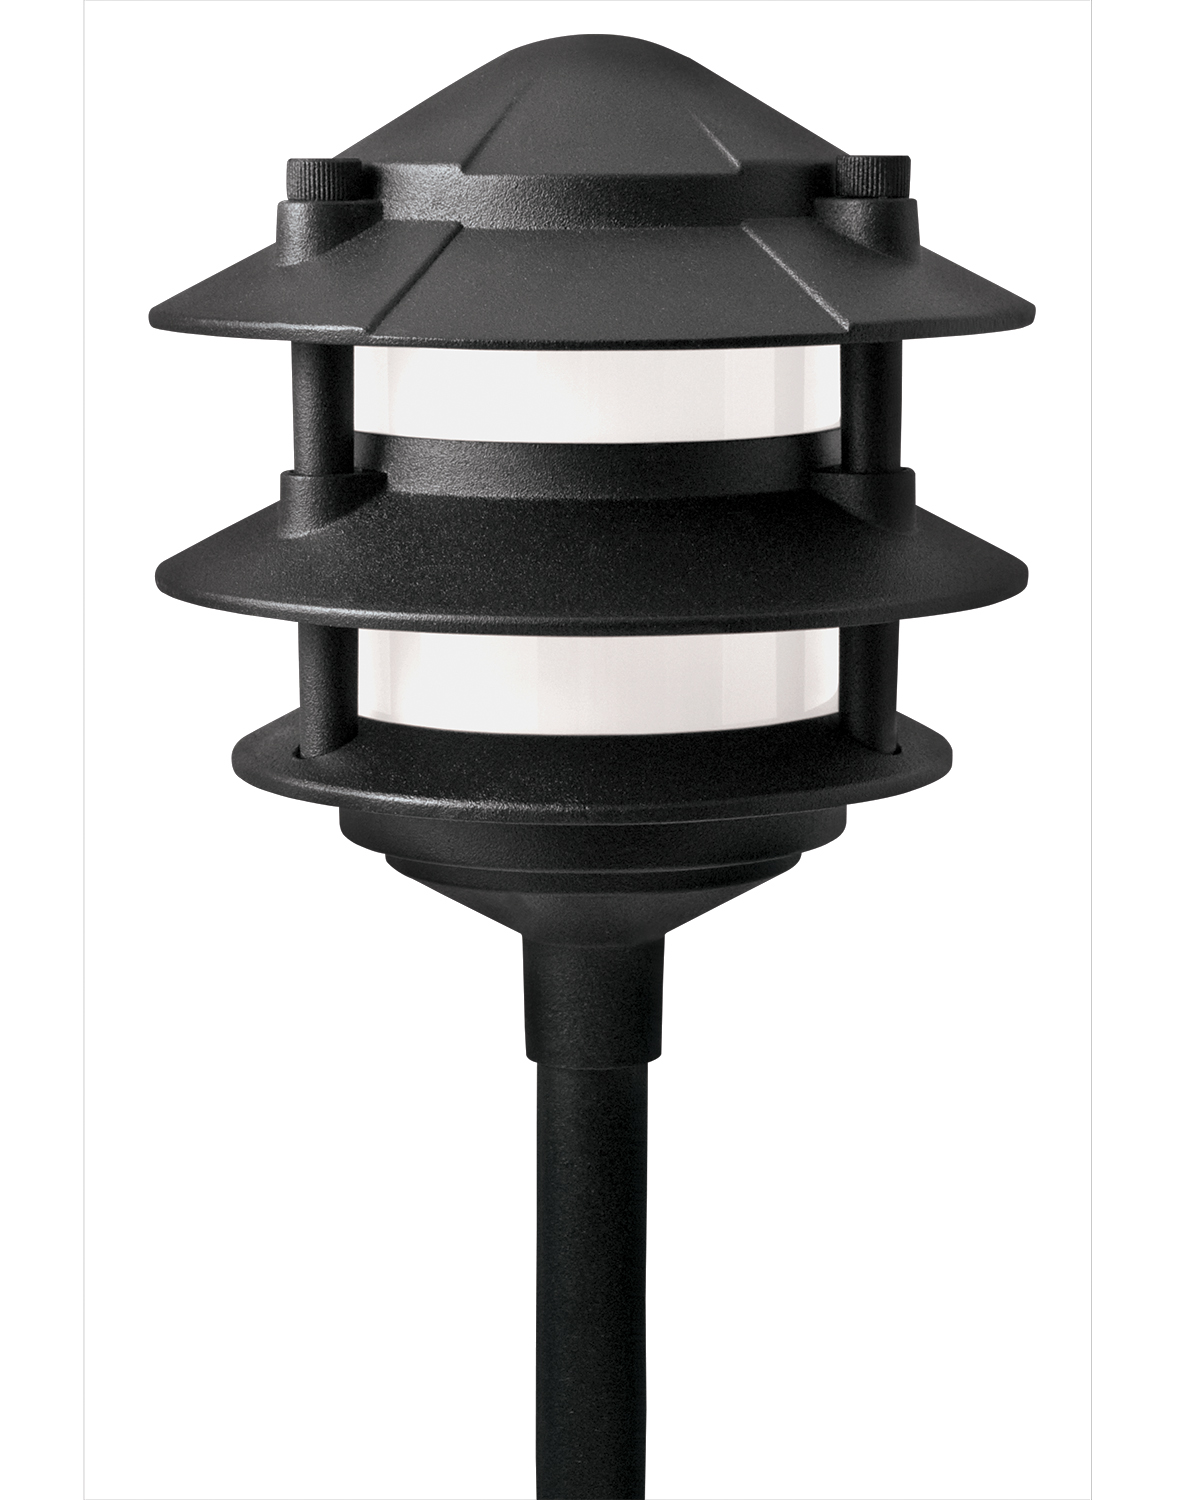 Paradise Low Voltage Black Aluminum 11 Watt 3 Tier Outdoor Garden Path Light